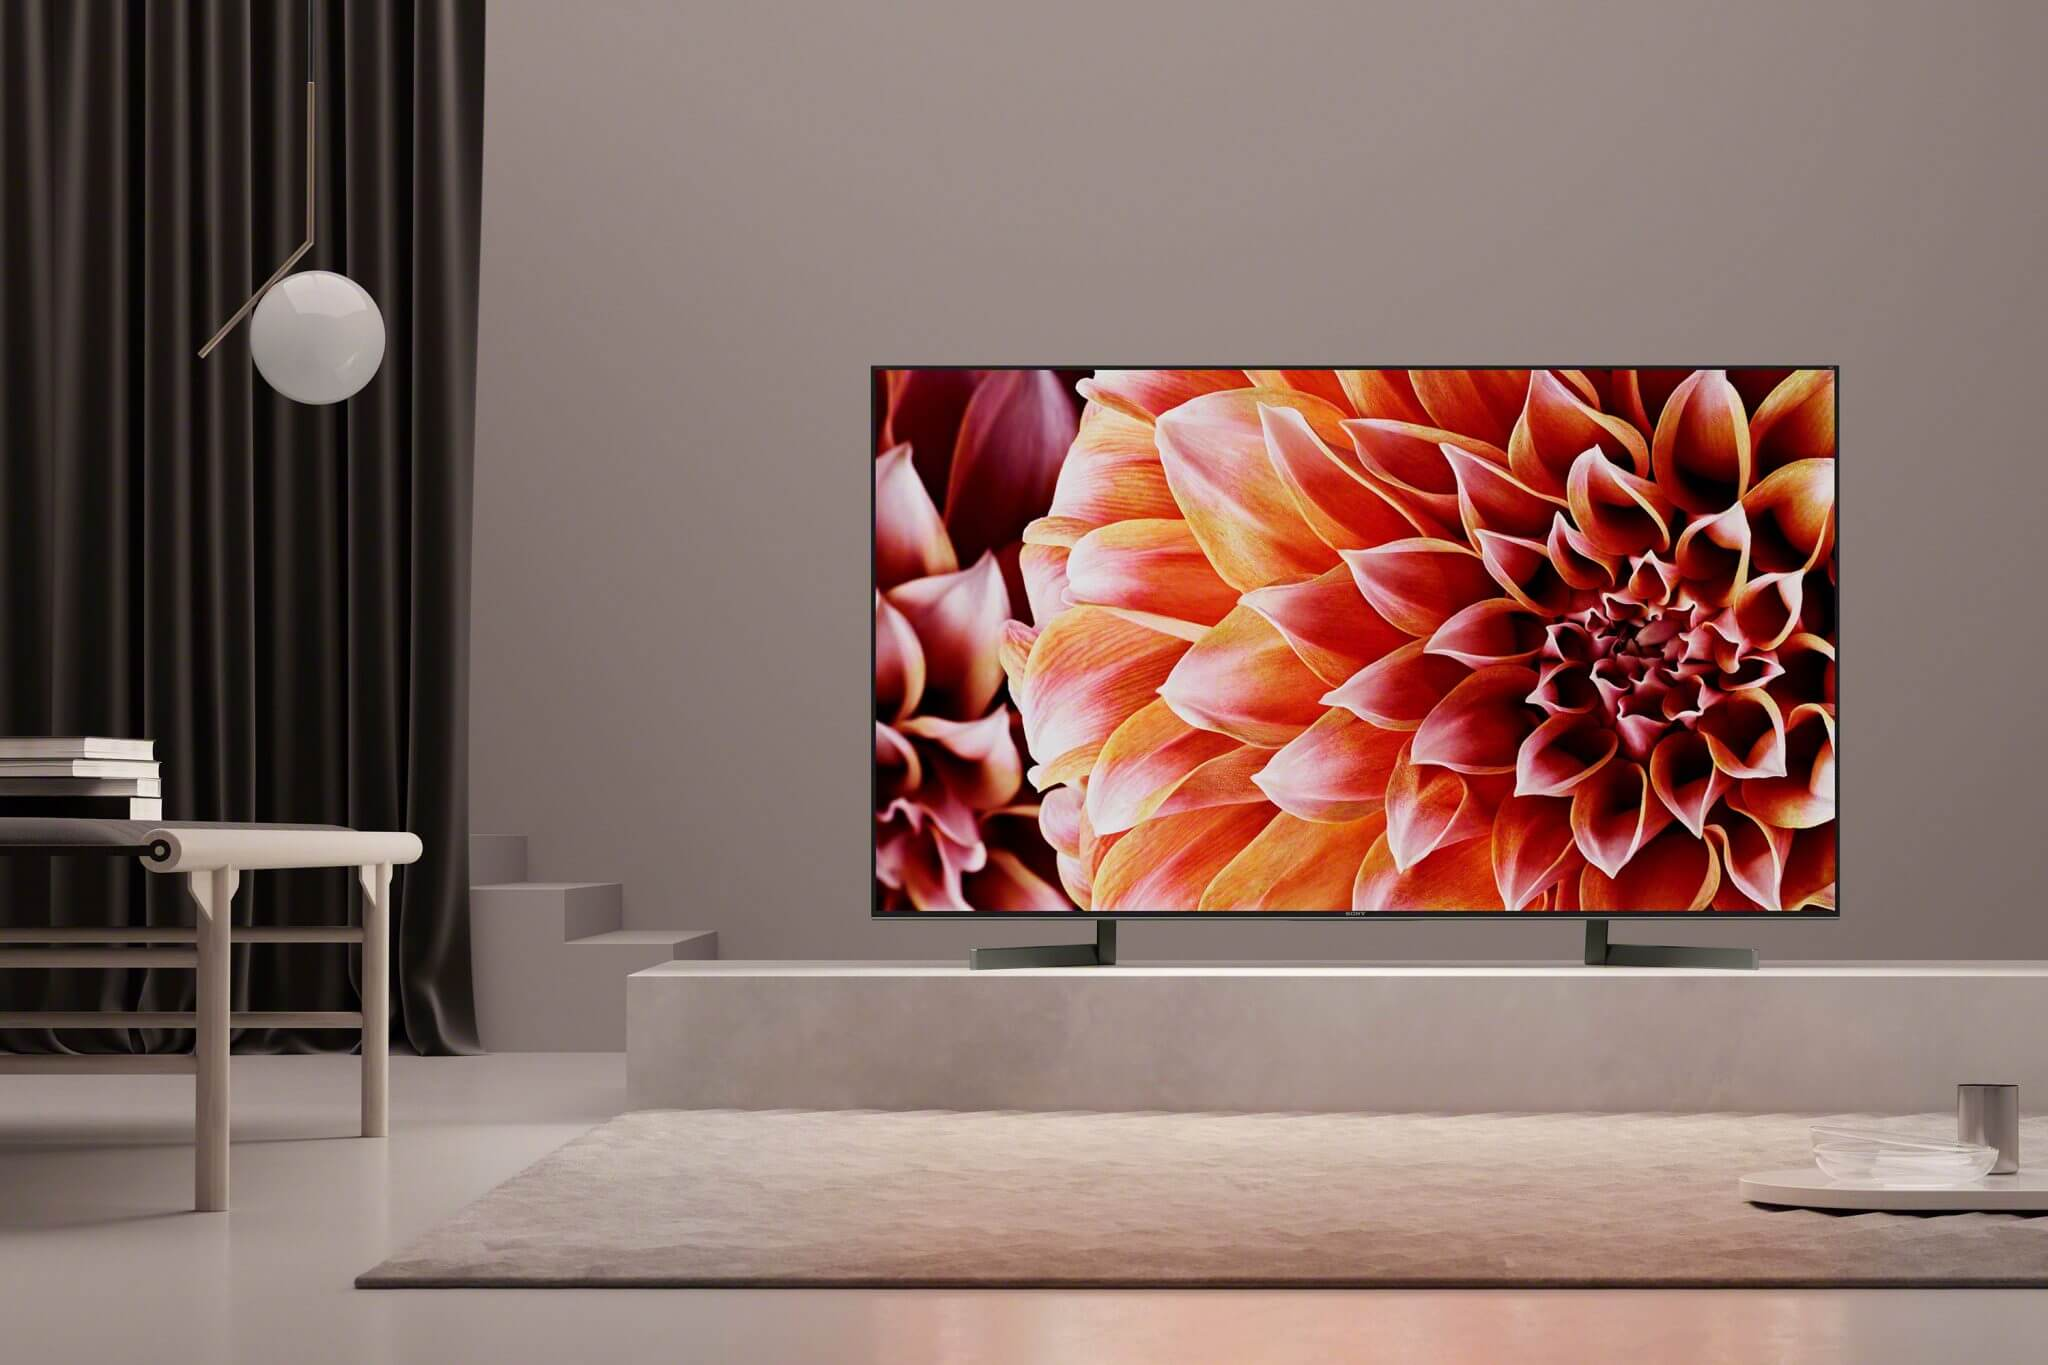 FY18Graphic In Situation X900F darksil SoundbarX90F layered Large - CES 2018: Sony anuncia novas séries de TVs OLED e LCD 4K HDR